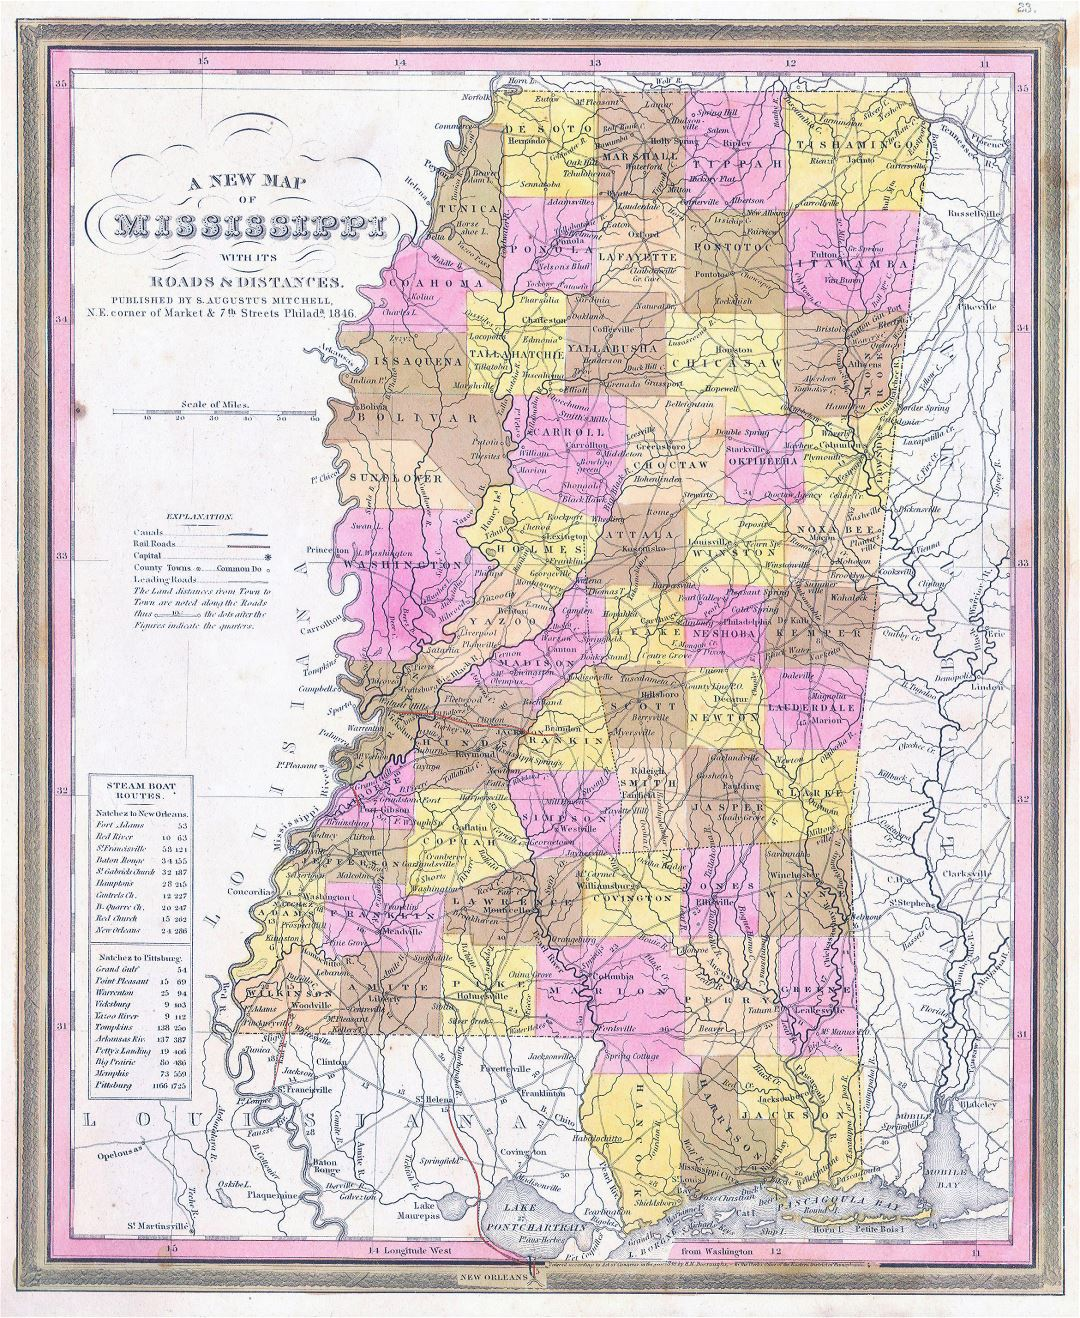 Large detailed old administrative map of Mississippi state with roads, railroads and cities - 1846